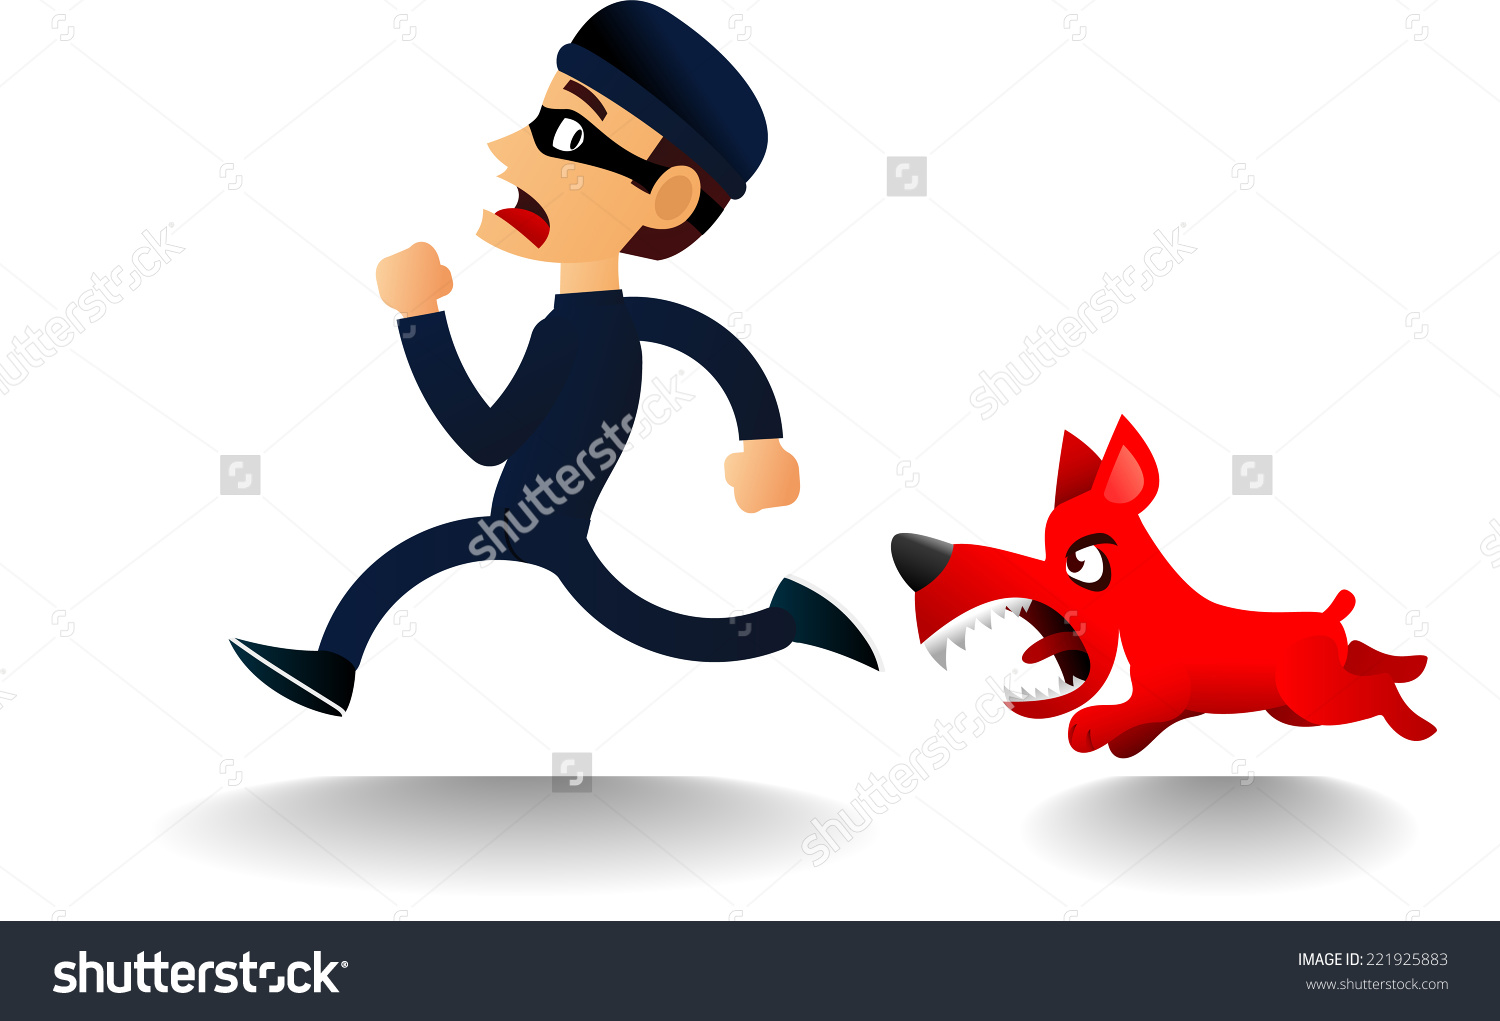 Agree dog chase black and white clipart - ClipartFest graphic black and white stock